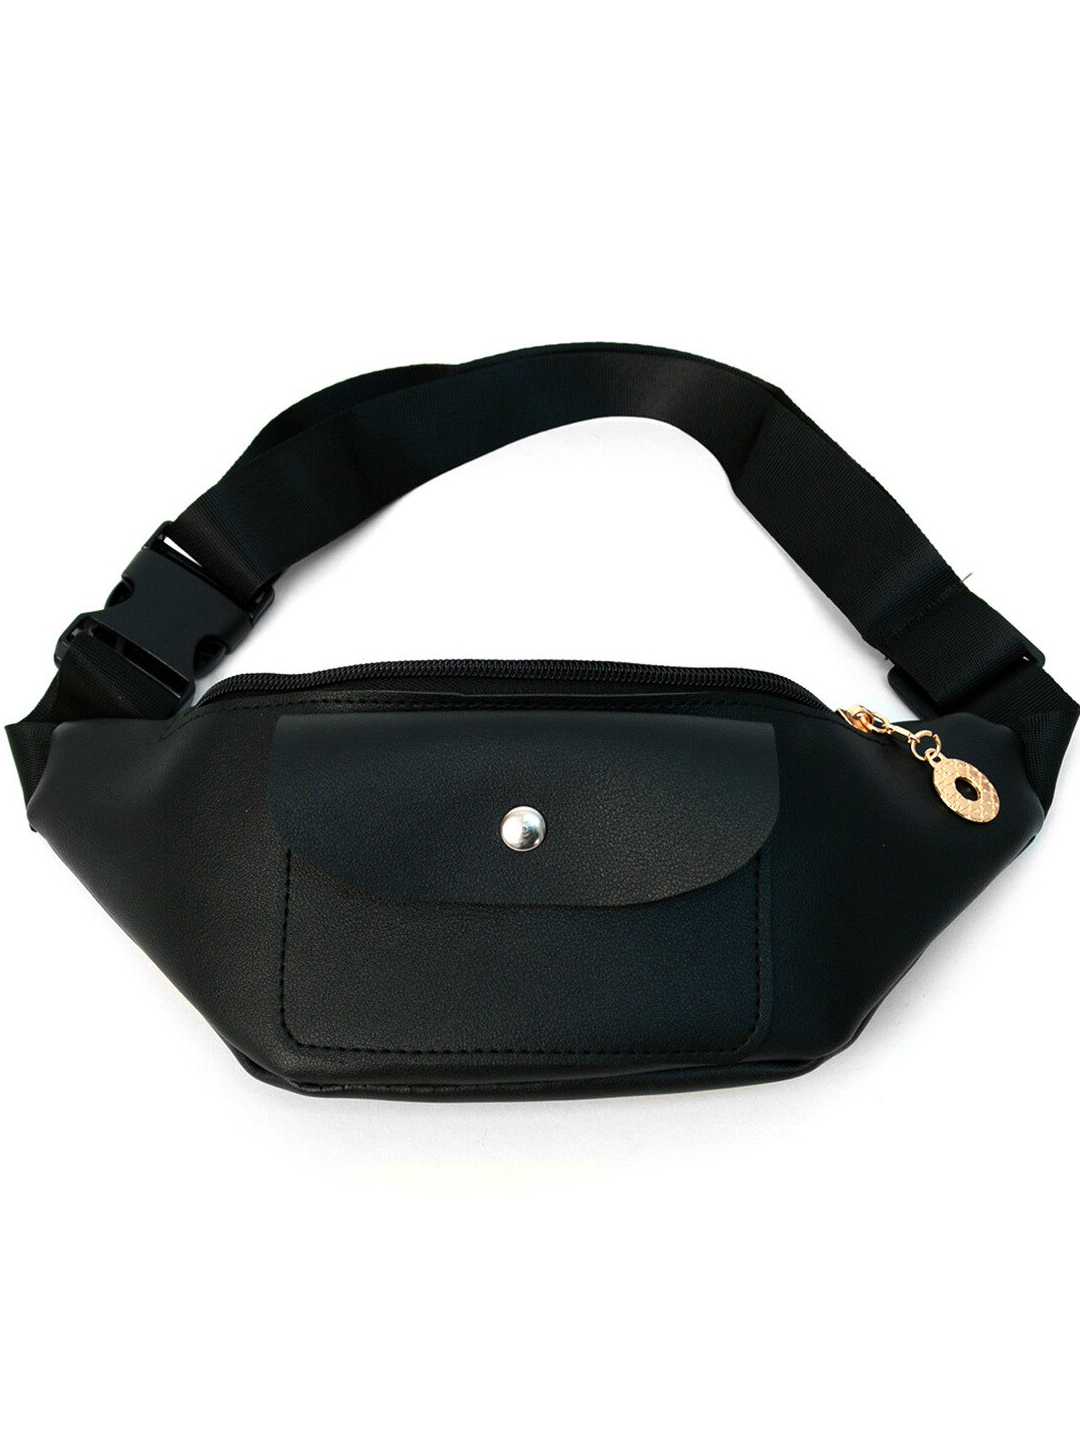 PU Leather Fanny Pack - Black - Front